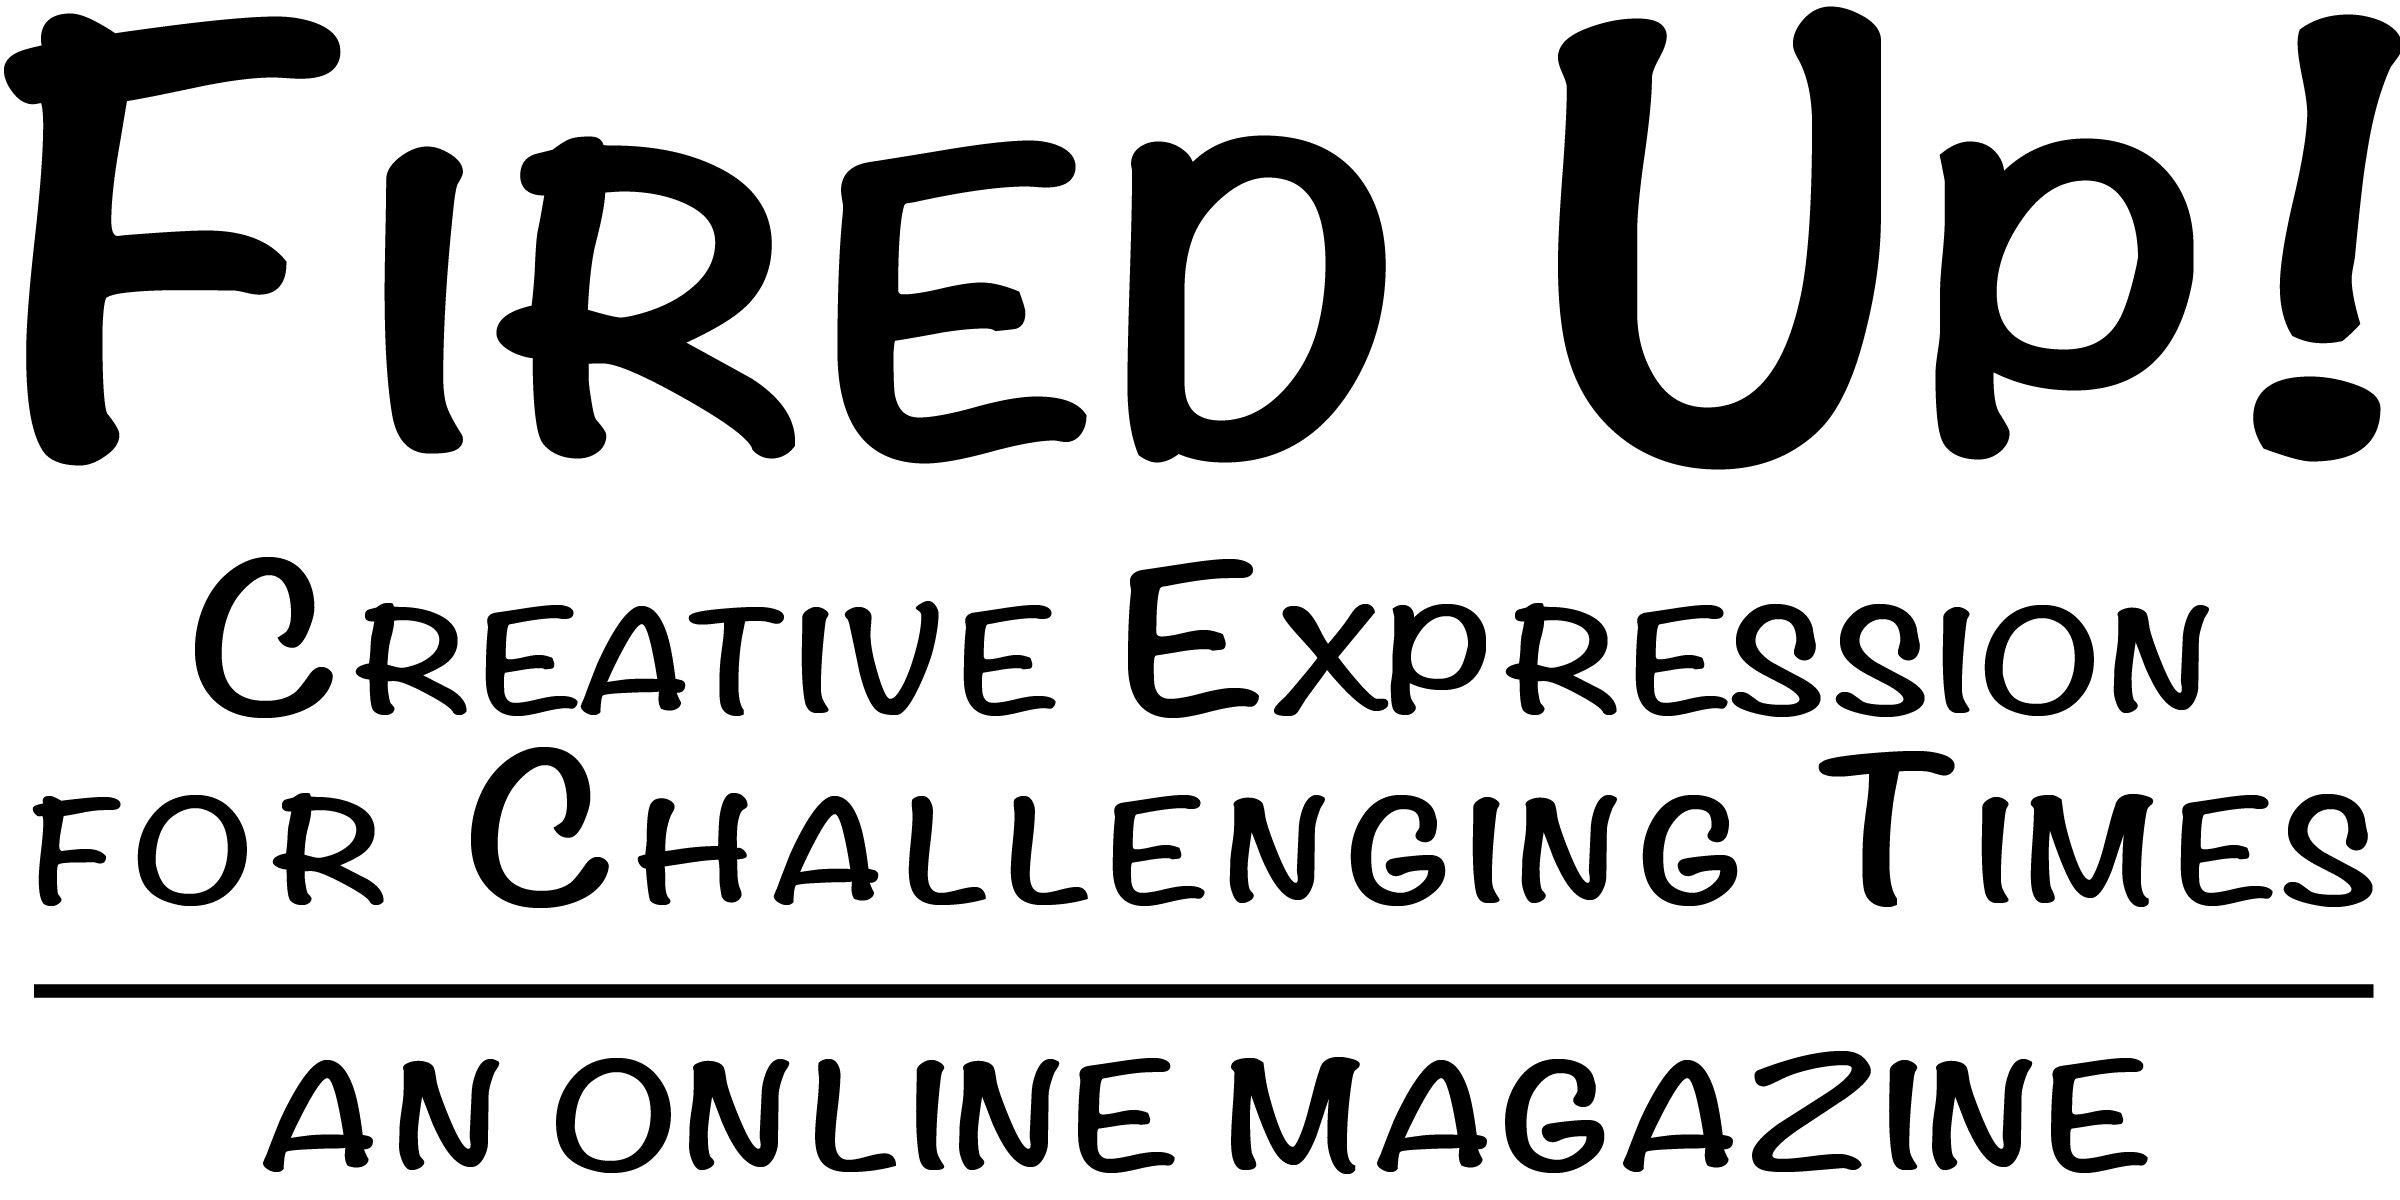 Fired Up! Creative Expression for Challenging Times